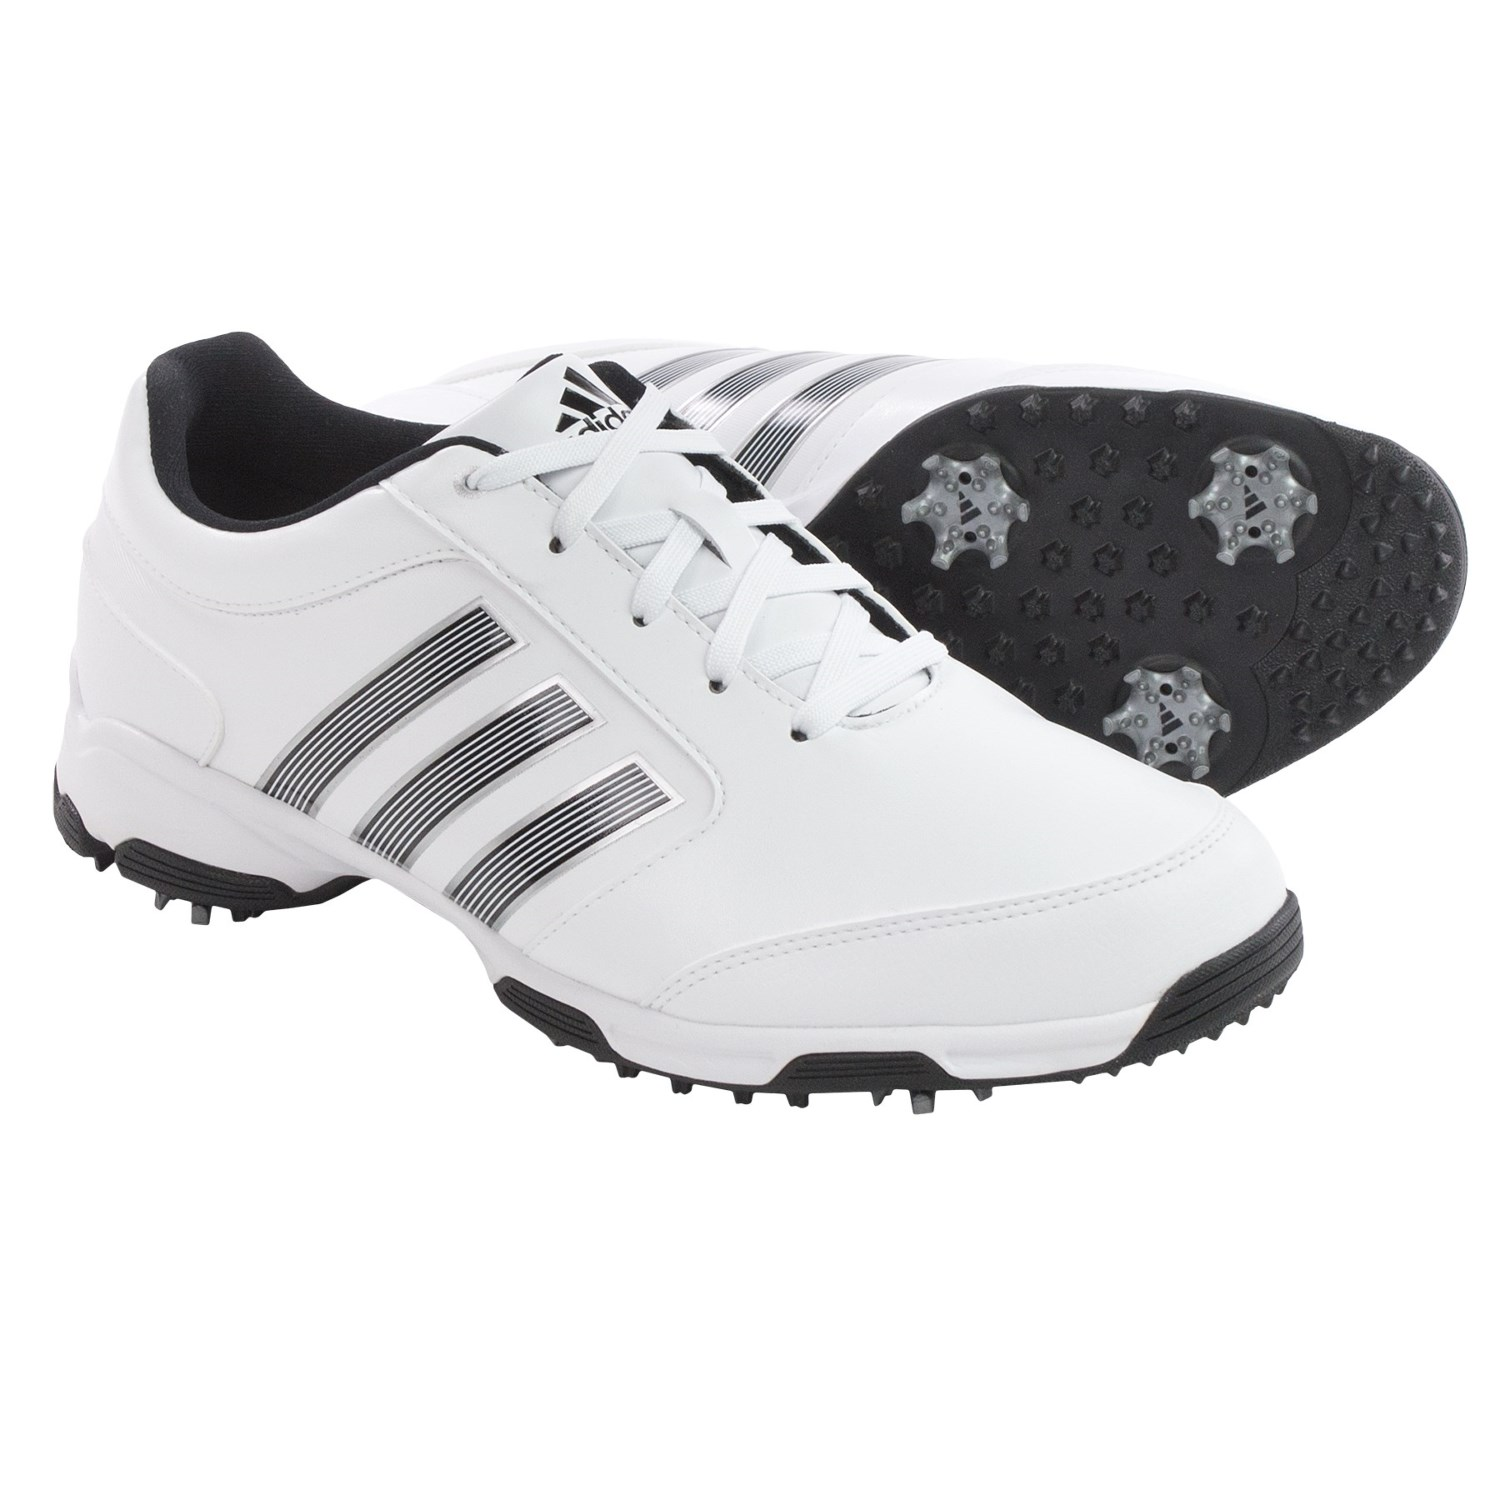 Adidas Tour  Lite Golf Shoes Review